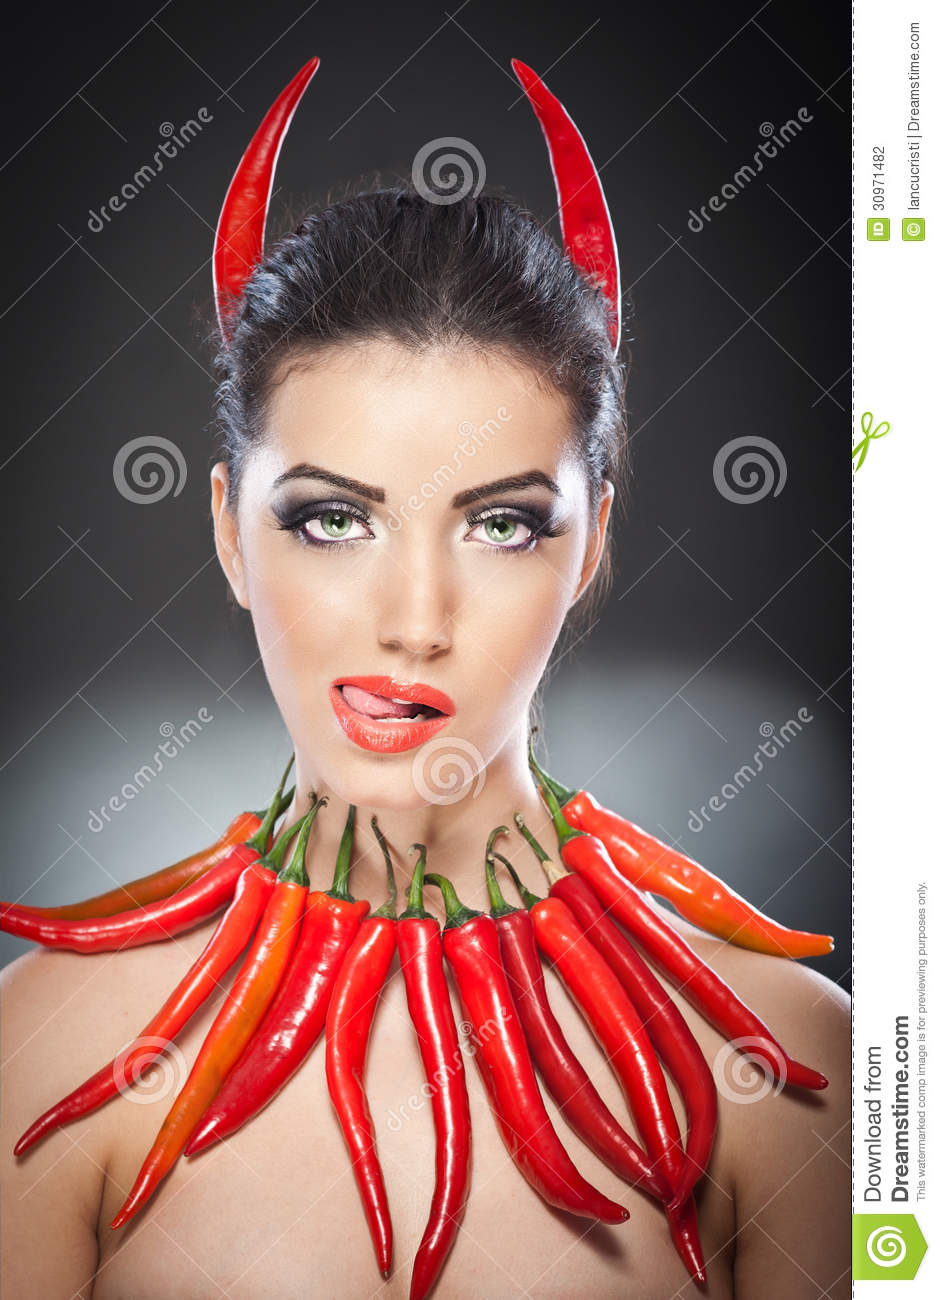 Salsa Delicadeza caliente del DIABLO ! - Página 4 Beautiful-young-woman-portrait-red-hot-spicy-peppers-fashion-model-creative-food-vegetable-make-up-over-black-30971482